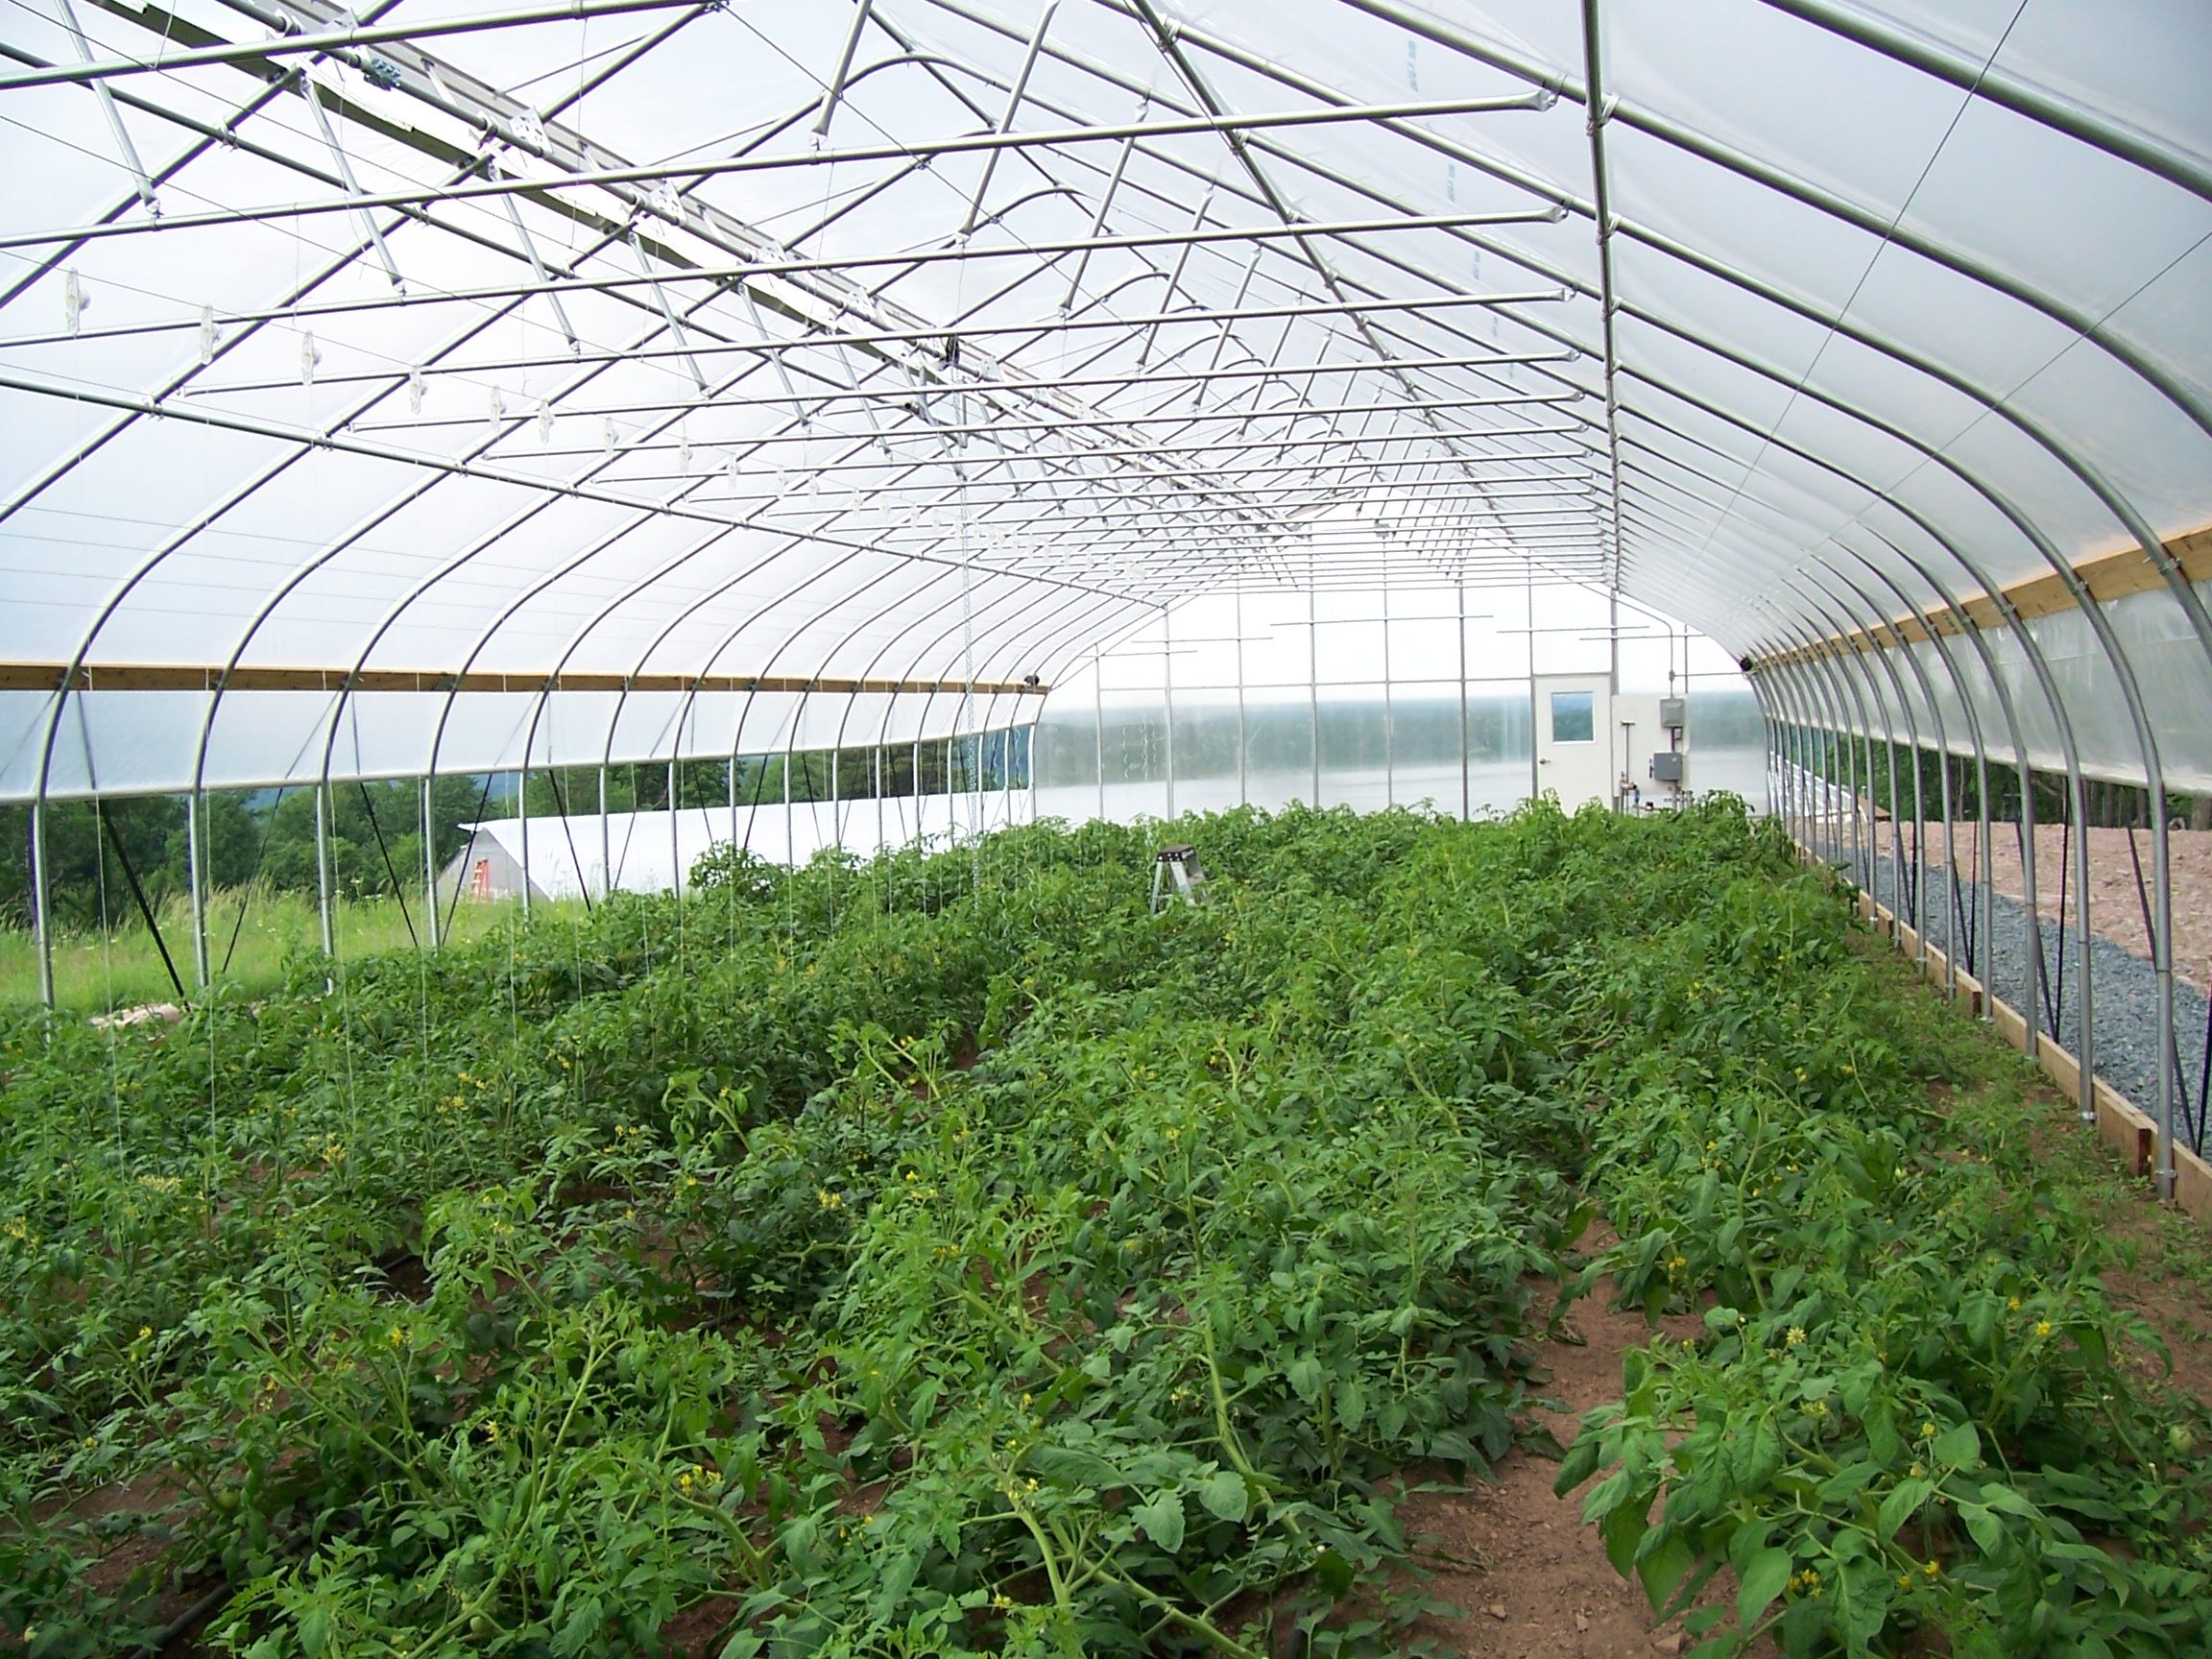 center for discovery is harris ny operates a rimol greenhouse systems high tunnel to grow - Rimol Greenhouse Of Photos